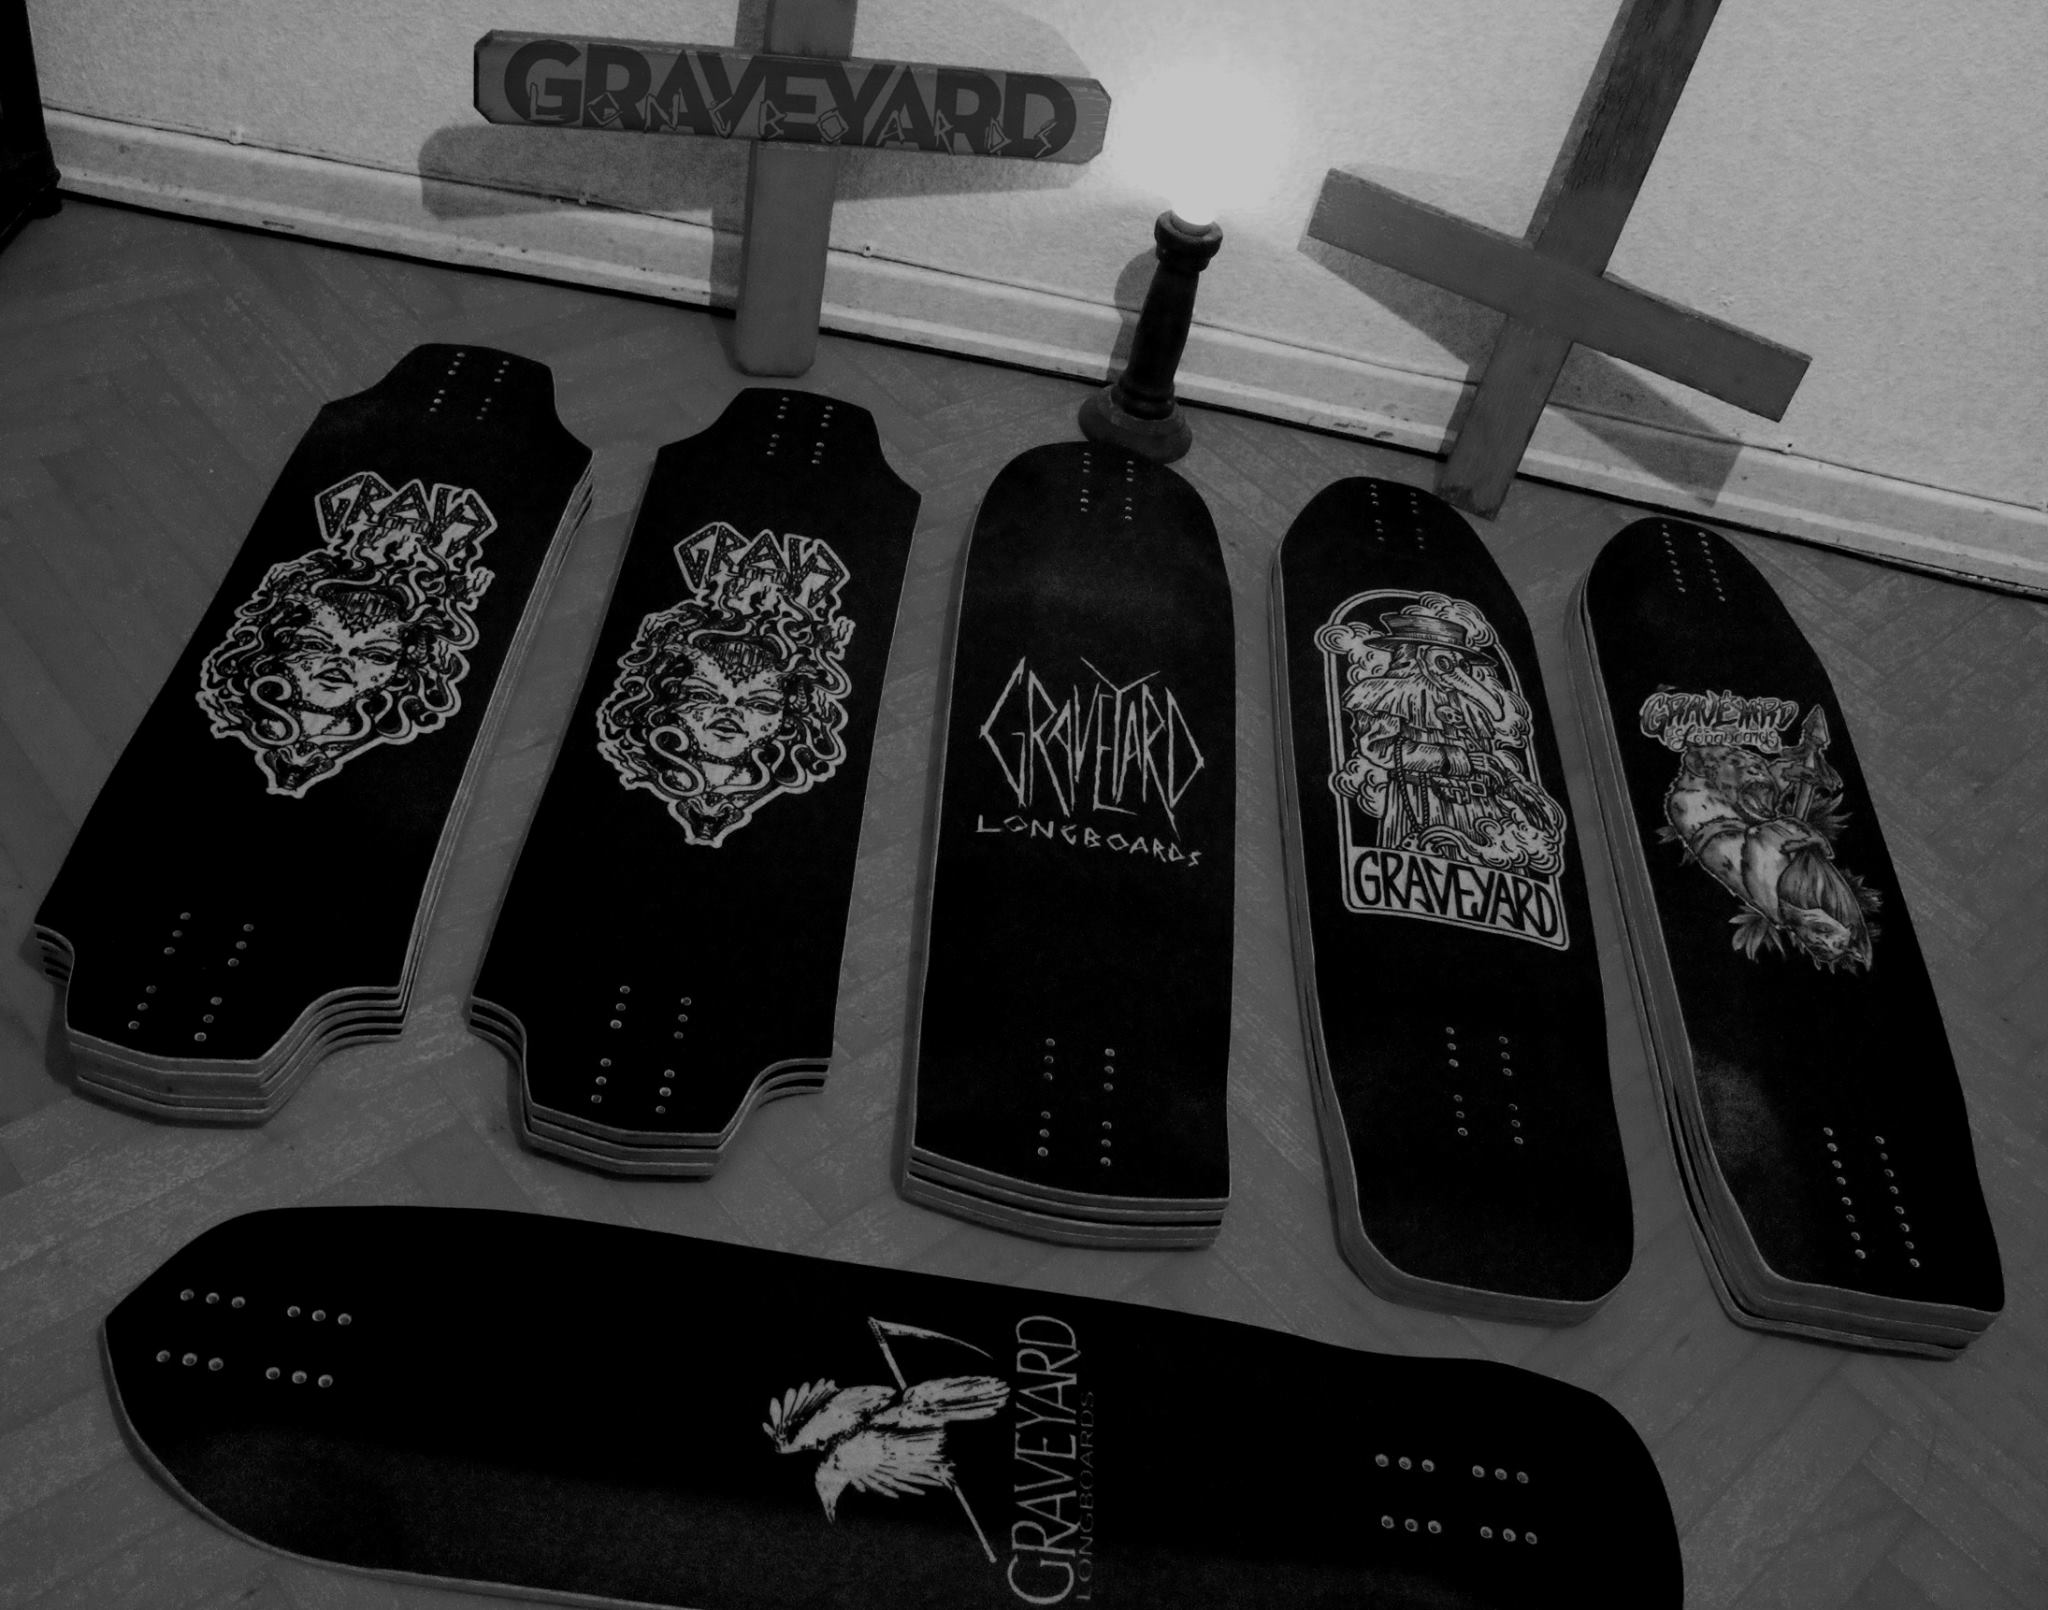 Ready to leave the Graveyard. Photo by Graveyard Longboards.